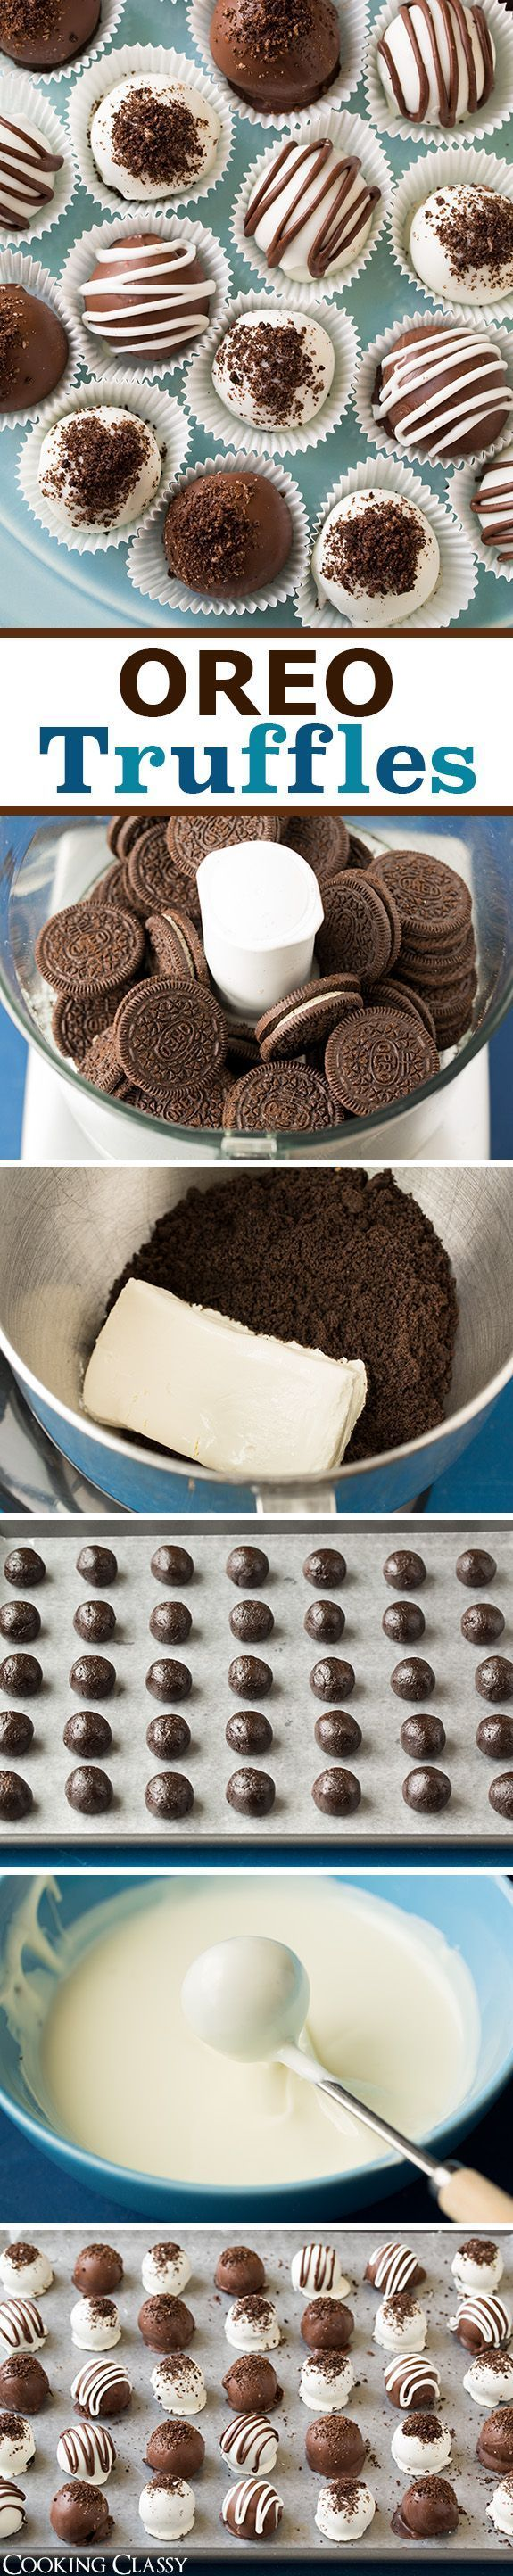 Oreo Truffles - 3 INGREDIENTS! These are one of my FAVORITE treats and they are so easy to make! Always the first thing to go at parties!